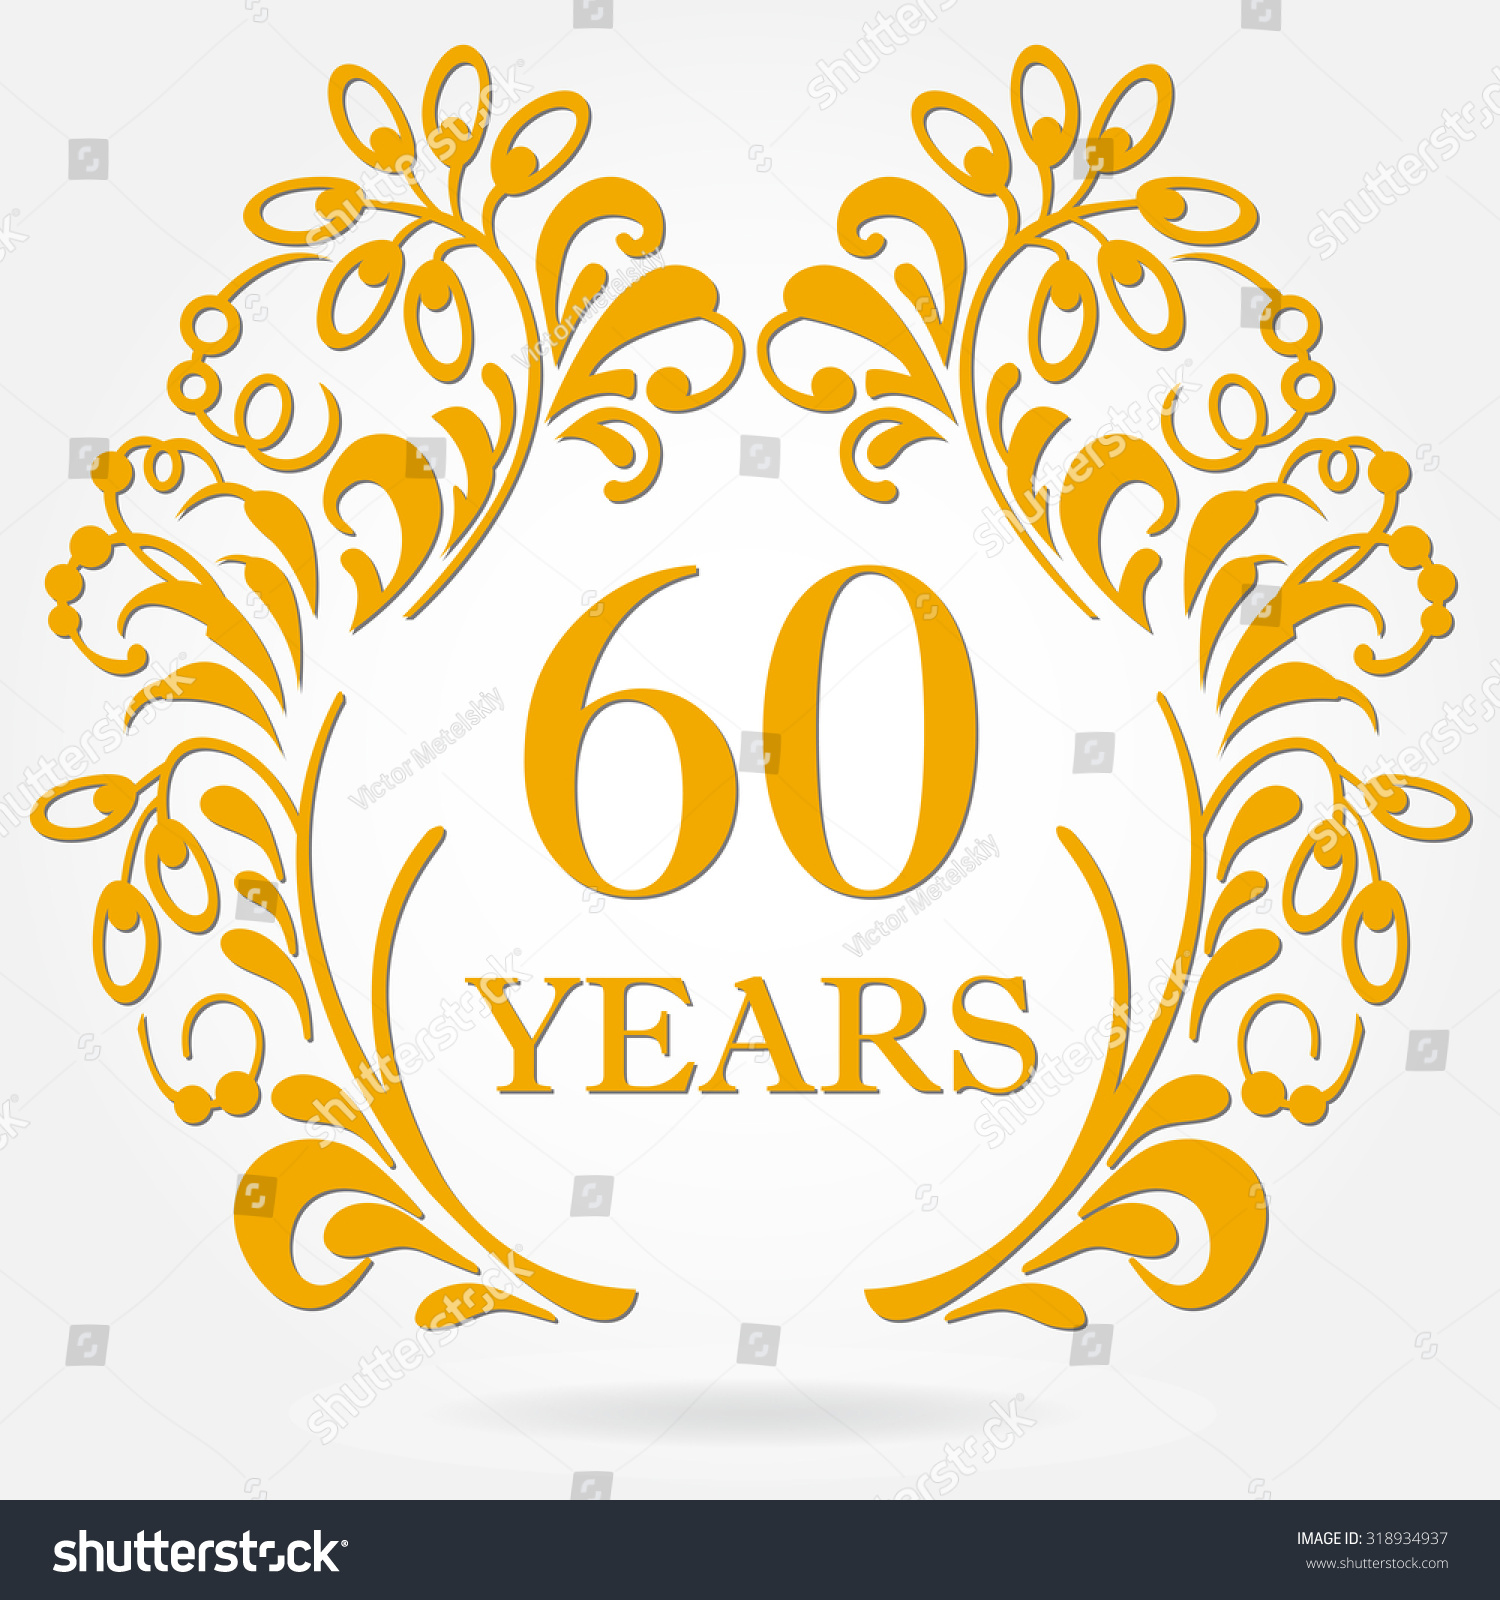 60 Years Anniversary Icon Ornate Frame Stock Vector